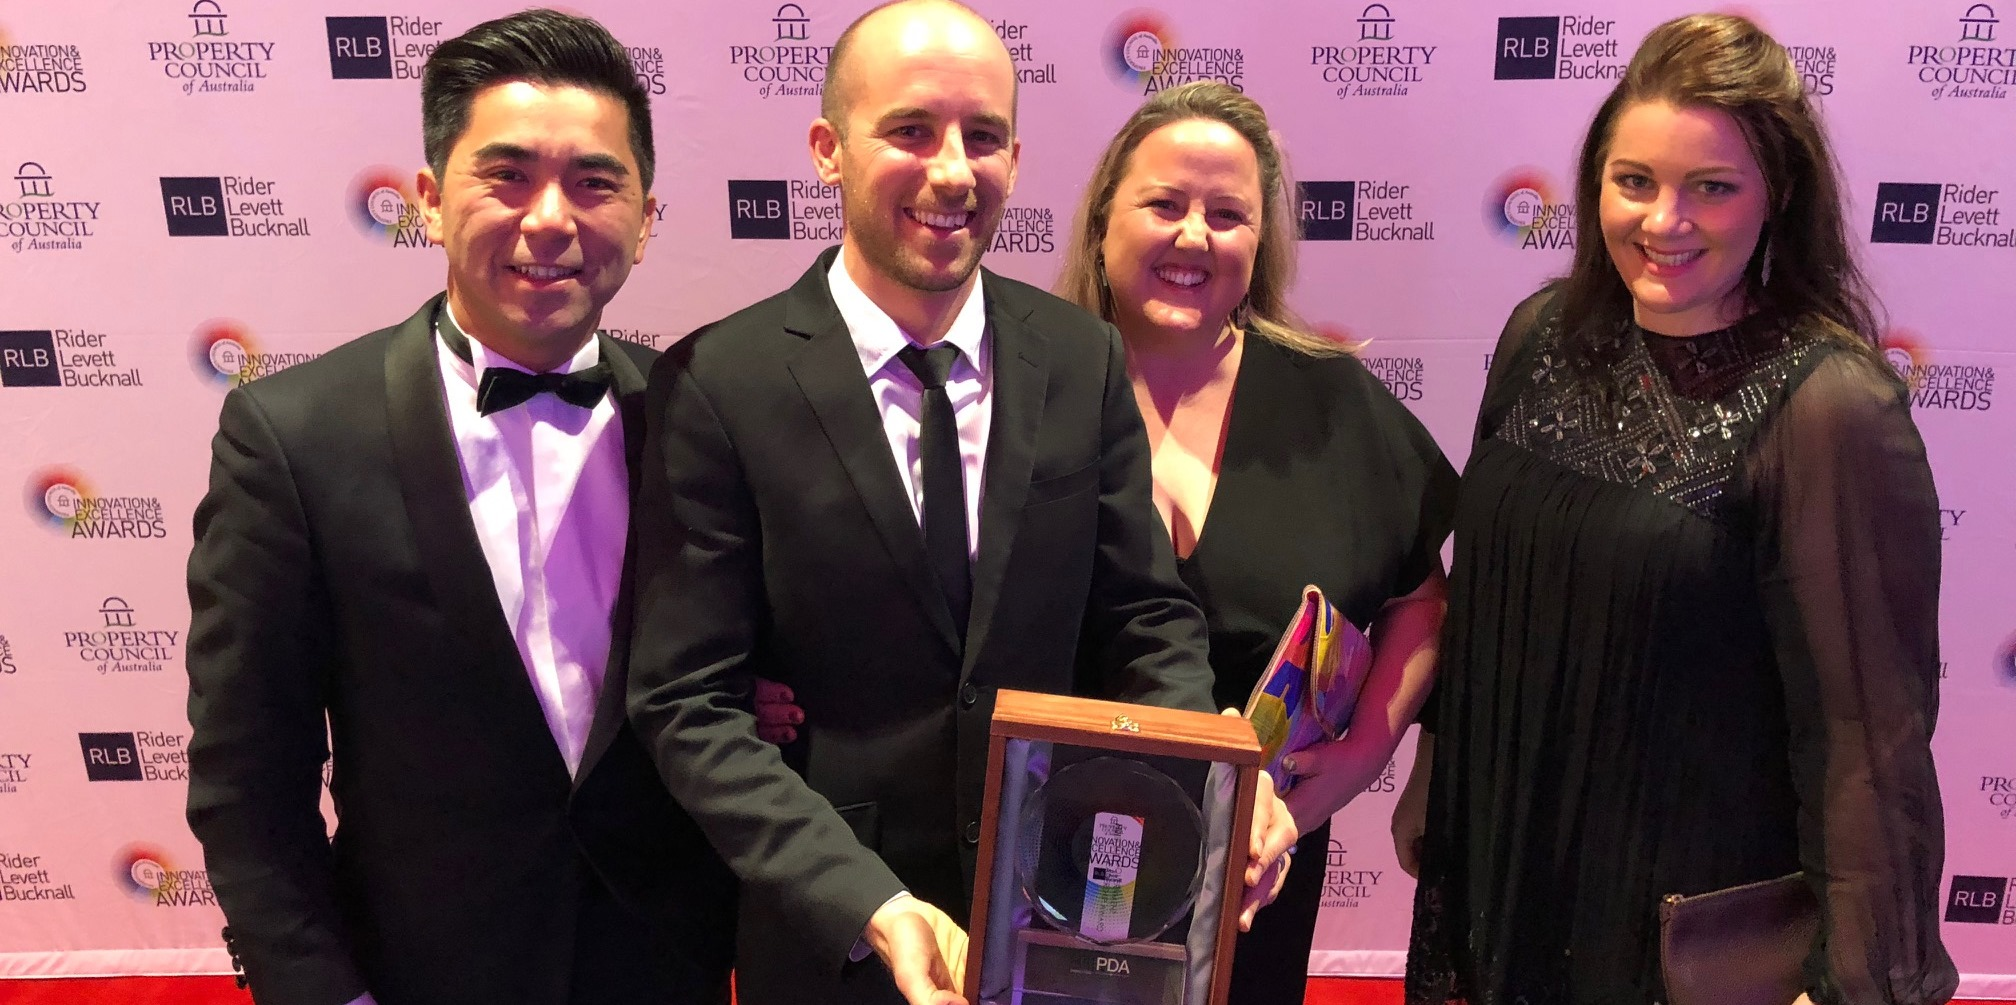 VicTrack staff with the Property Council of Australia award